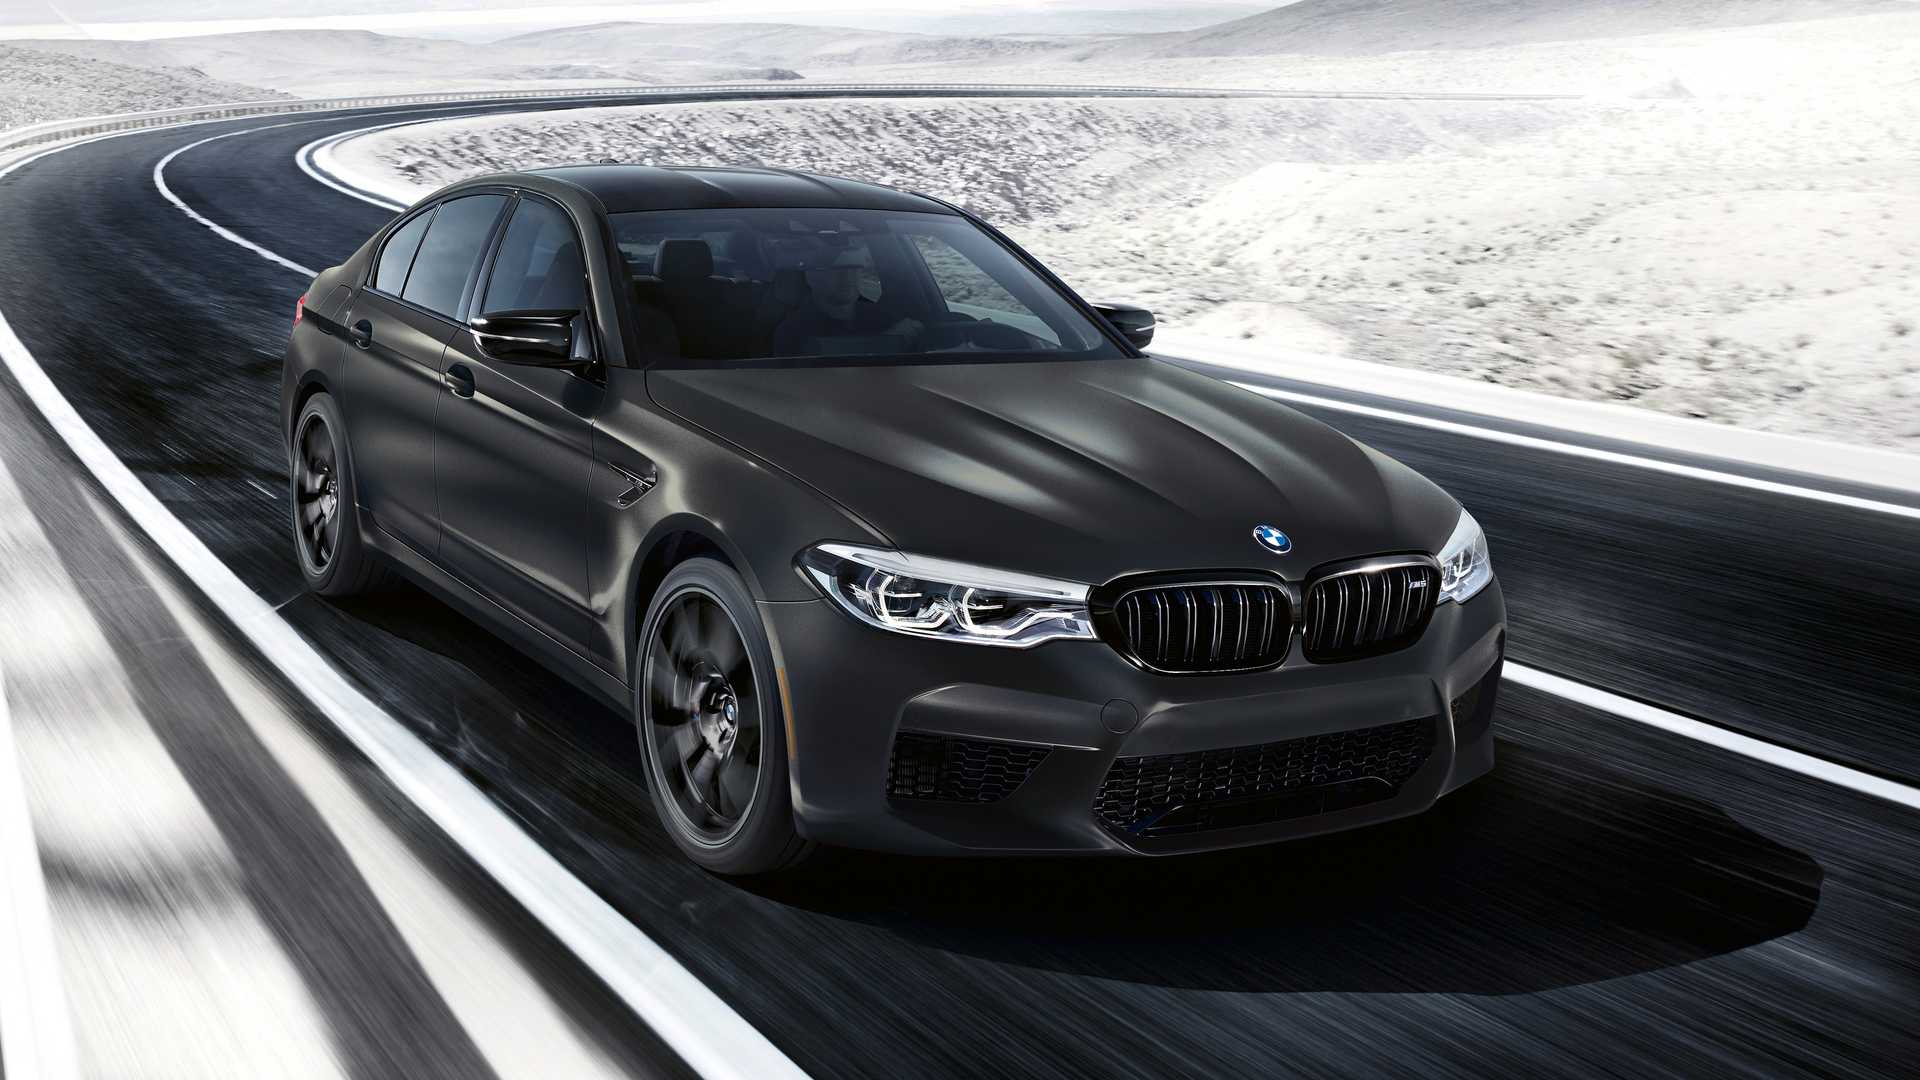 80 New 2020 BMW M5 Xdrive Awd Concept